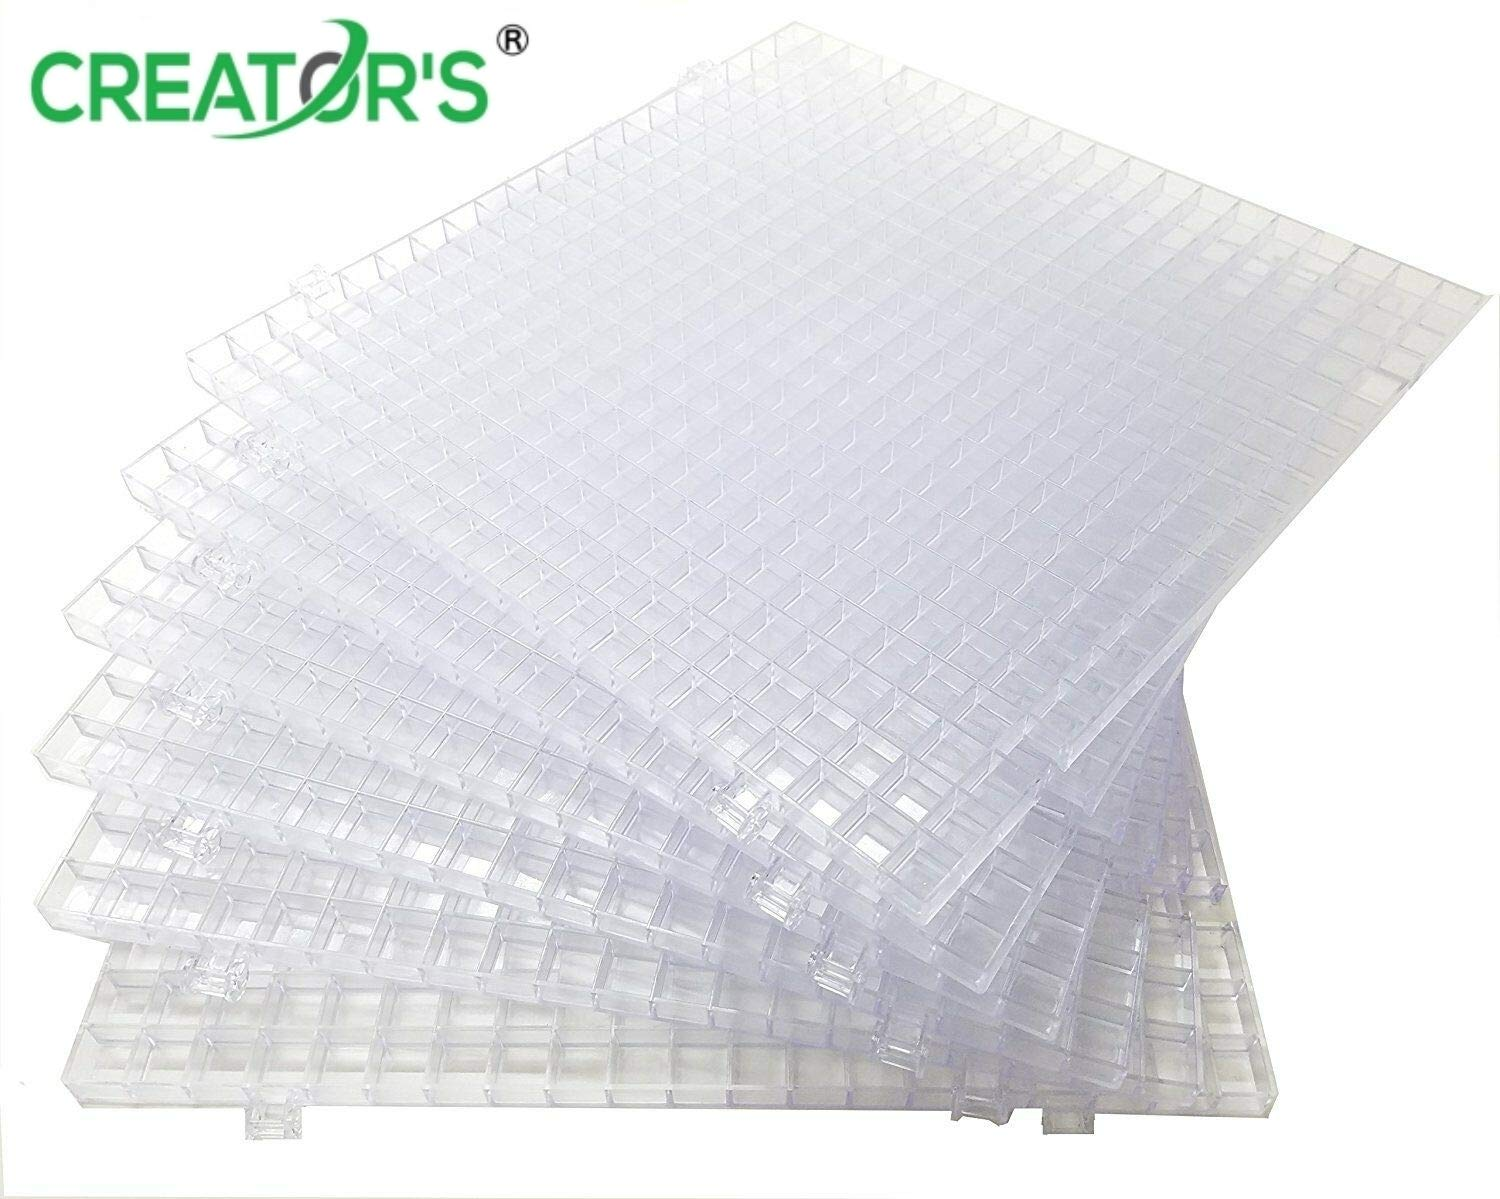 Creator's Waffle Grid 6-Pack - Solid Bottom Translucent/Clear Modular Surface - Glass Cutting, Small Parts - Liquid Containment, Grow Room - For Home, Office, Shop - Also Use With Creator's Products by Creator's